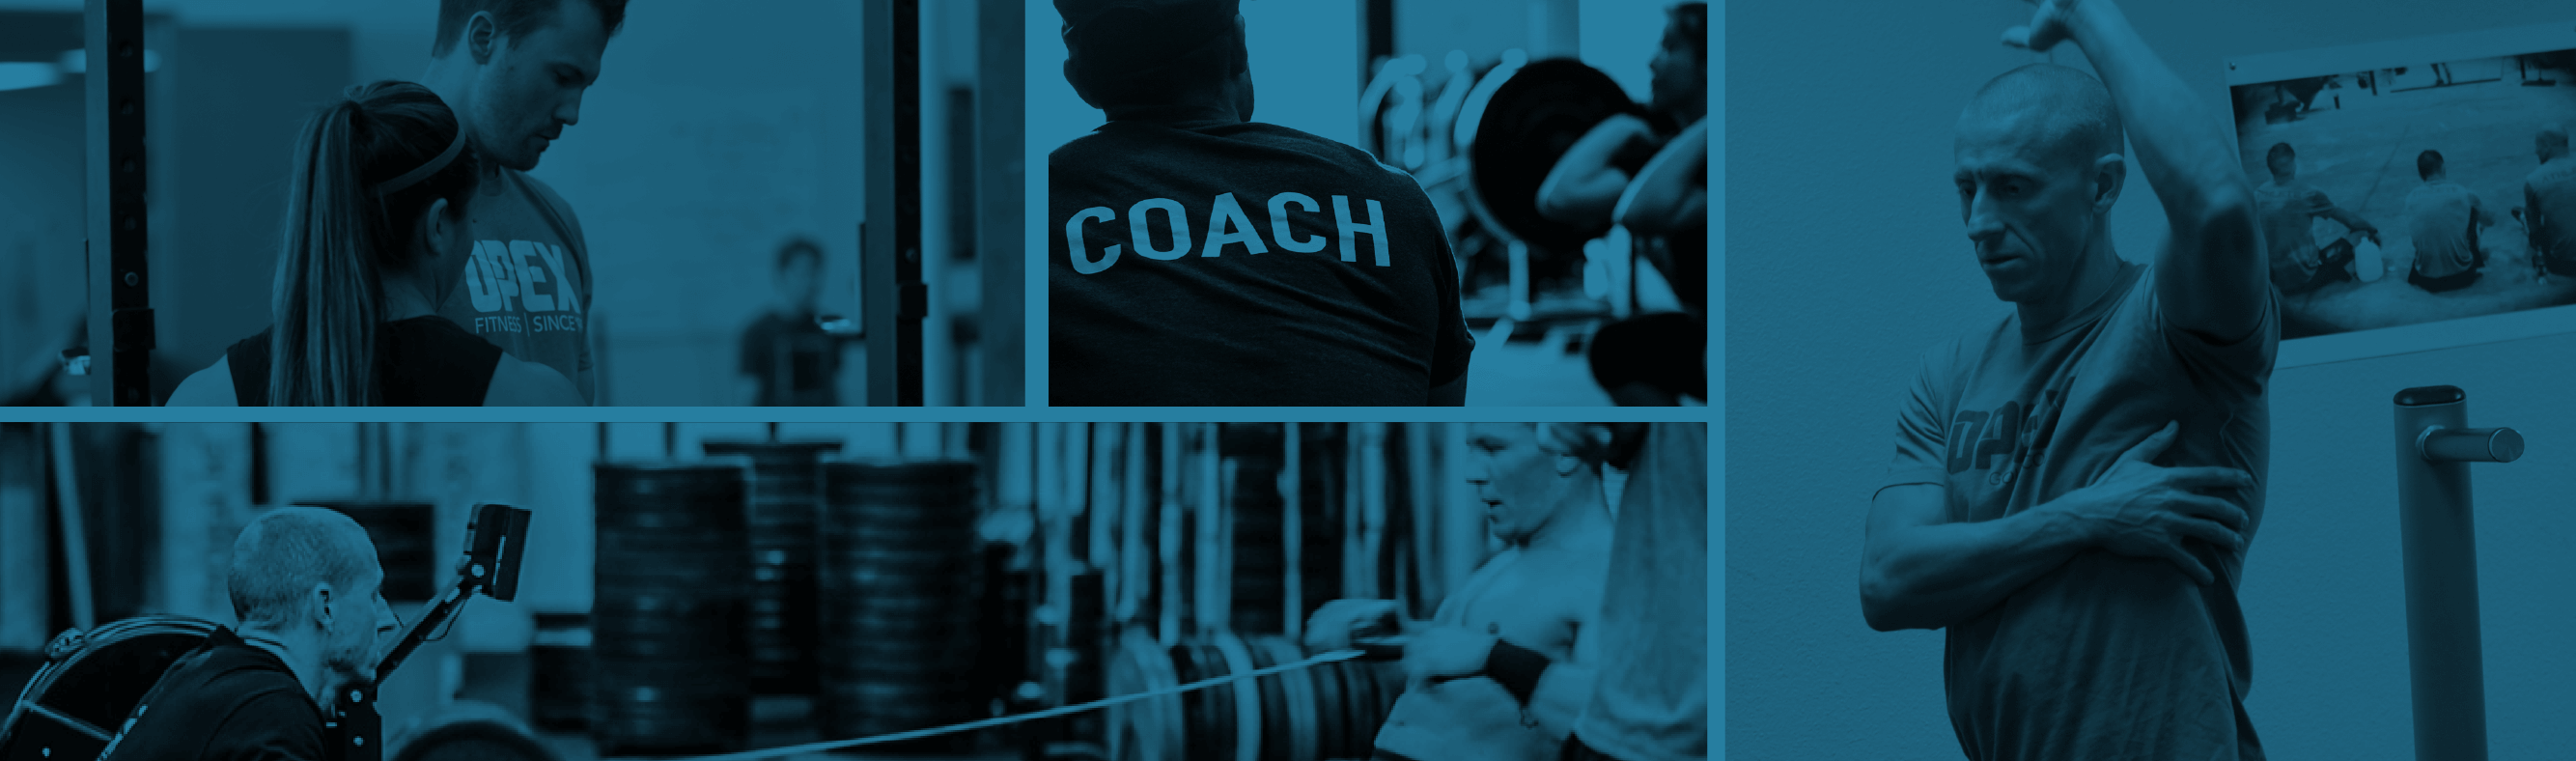 Group Fitness Instructor Vs OPEX Coach: Incentivizing Your Coaches